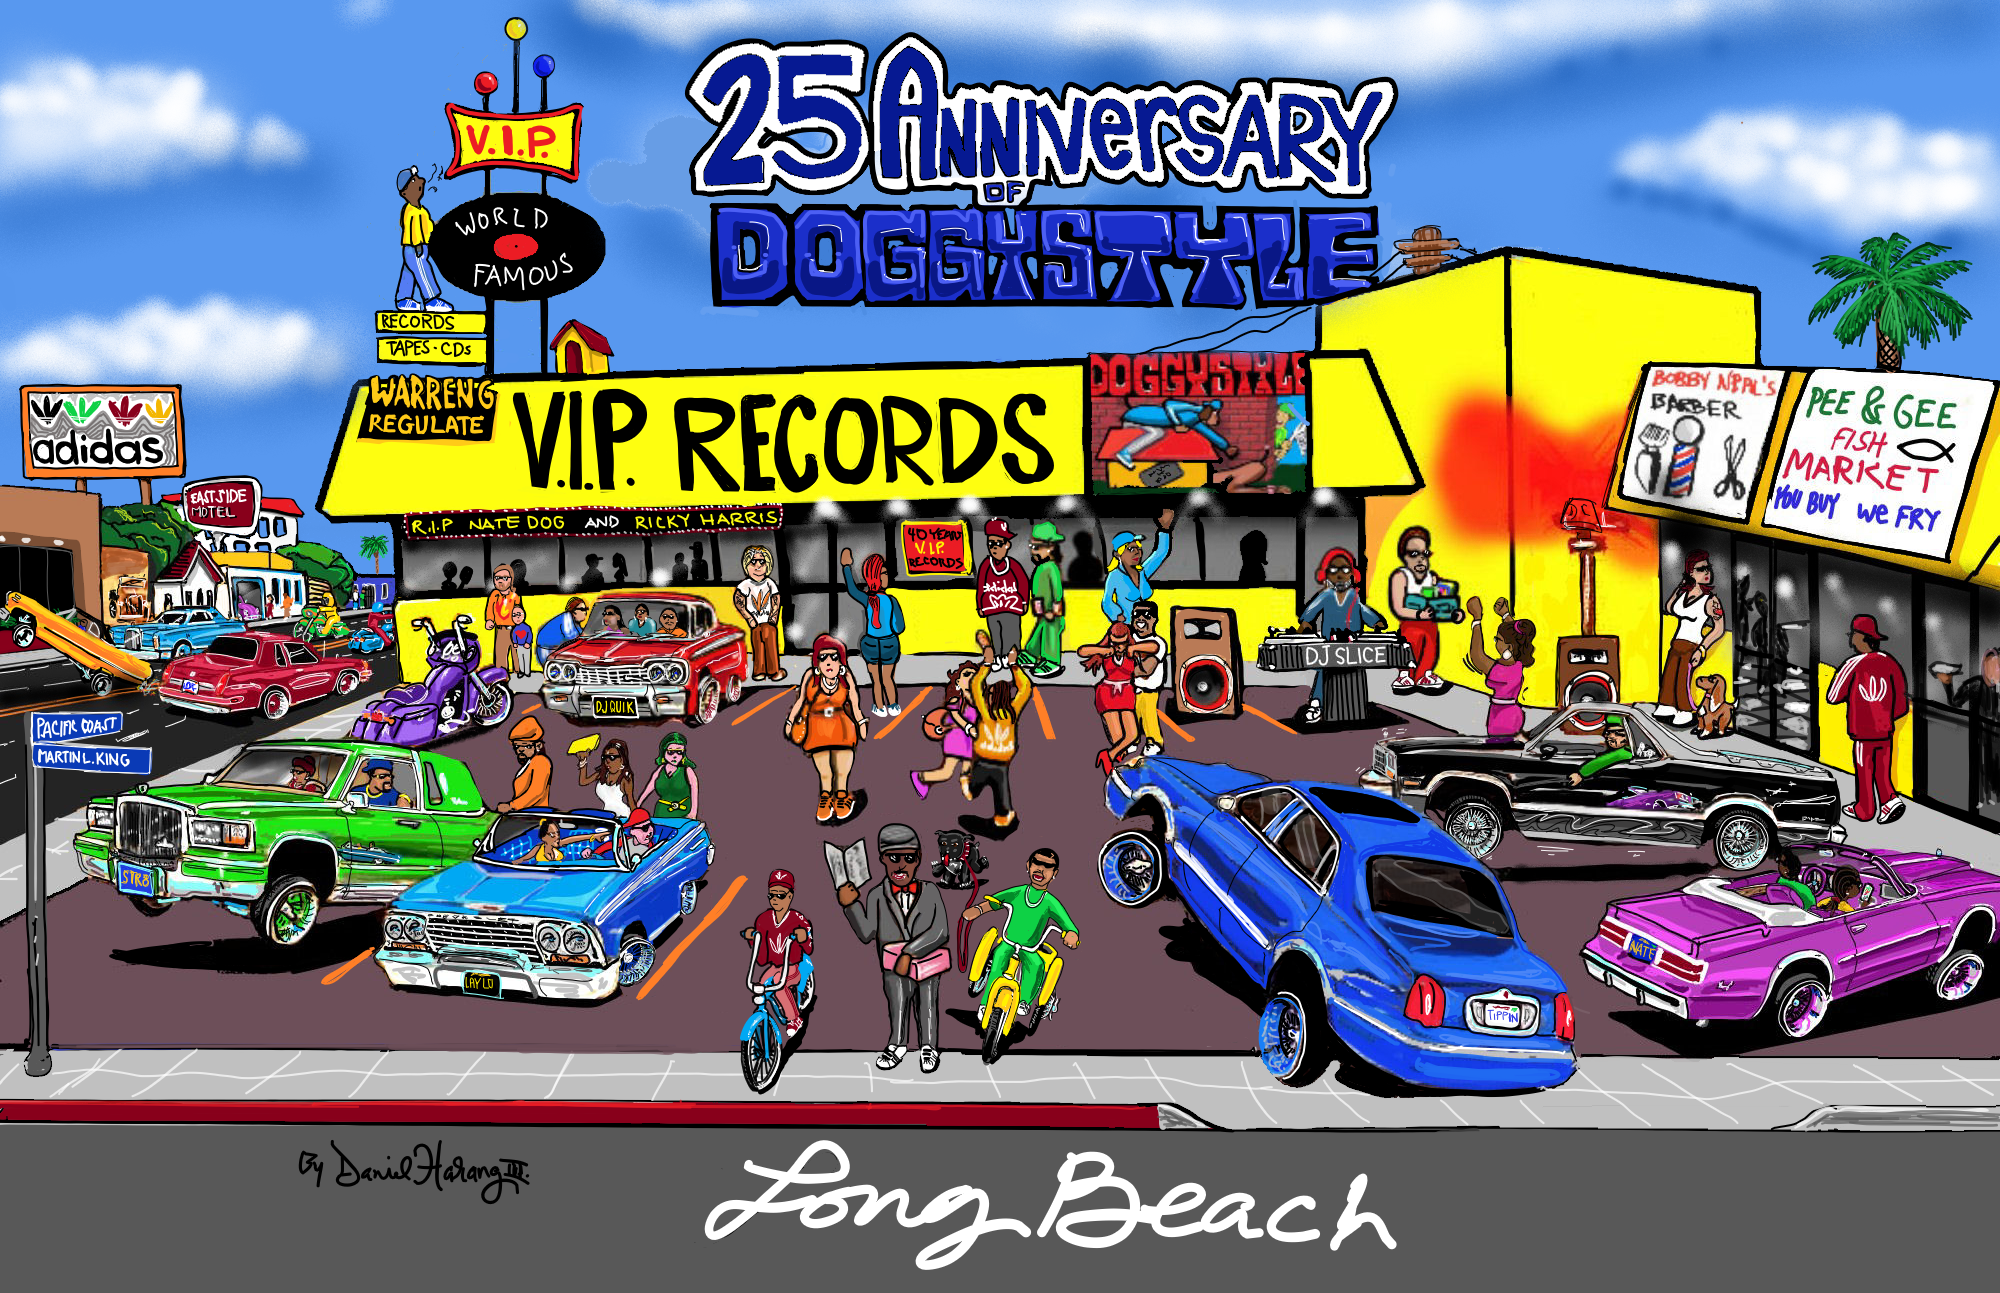 4184d25cb883c9 VIP Records Iconic Sign Gets the Respect it Deserves at ComplexCon ...